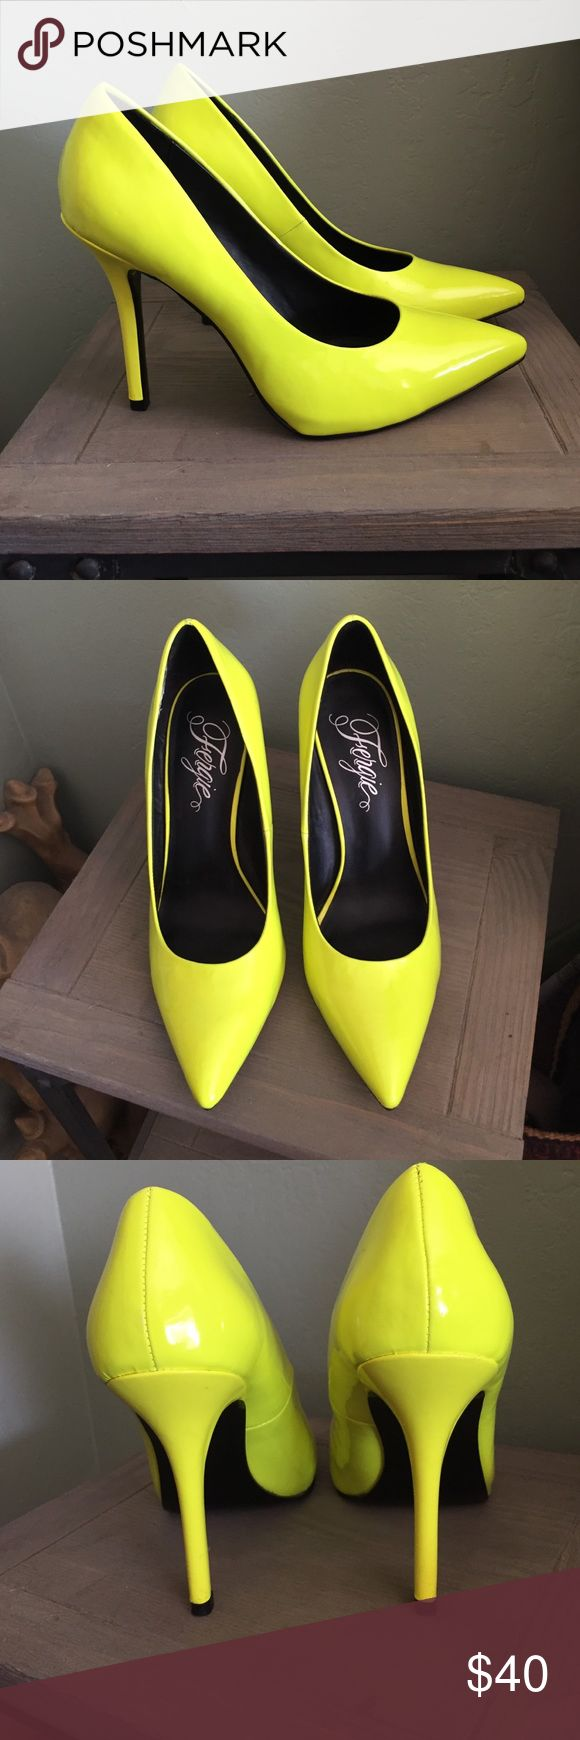 Fergie neon yellow pumps Neon pumps with extremely light wear. Minor scuffing on one as shown. Fergie Shoes Heels